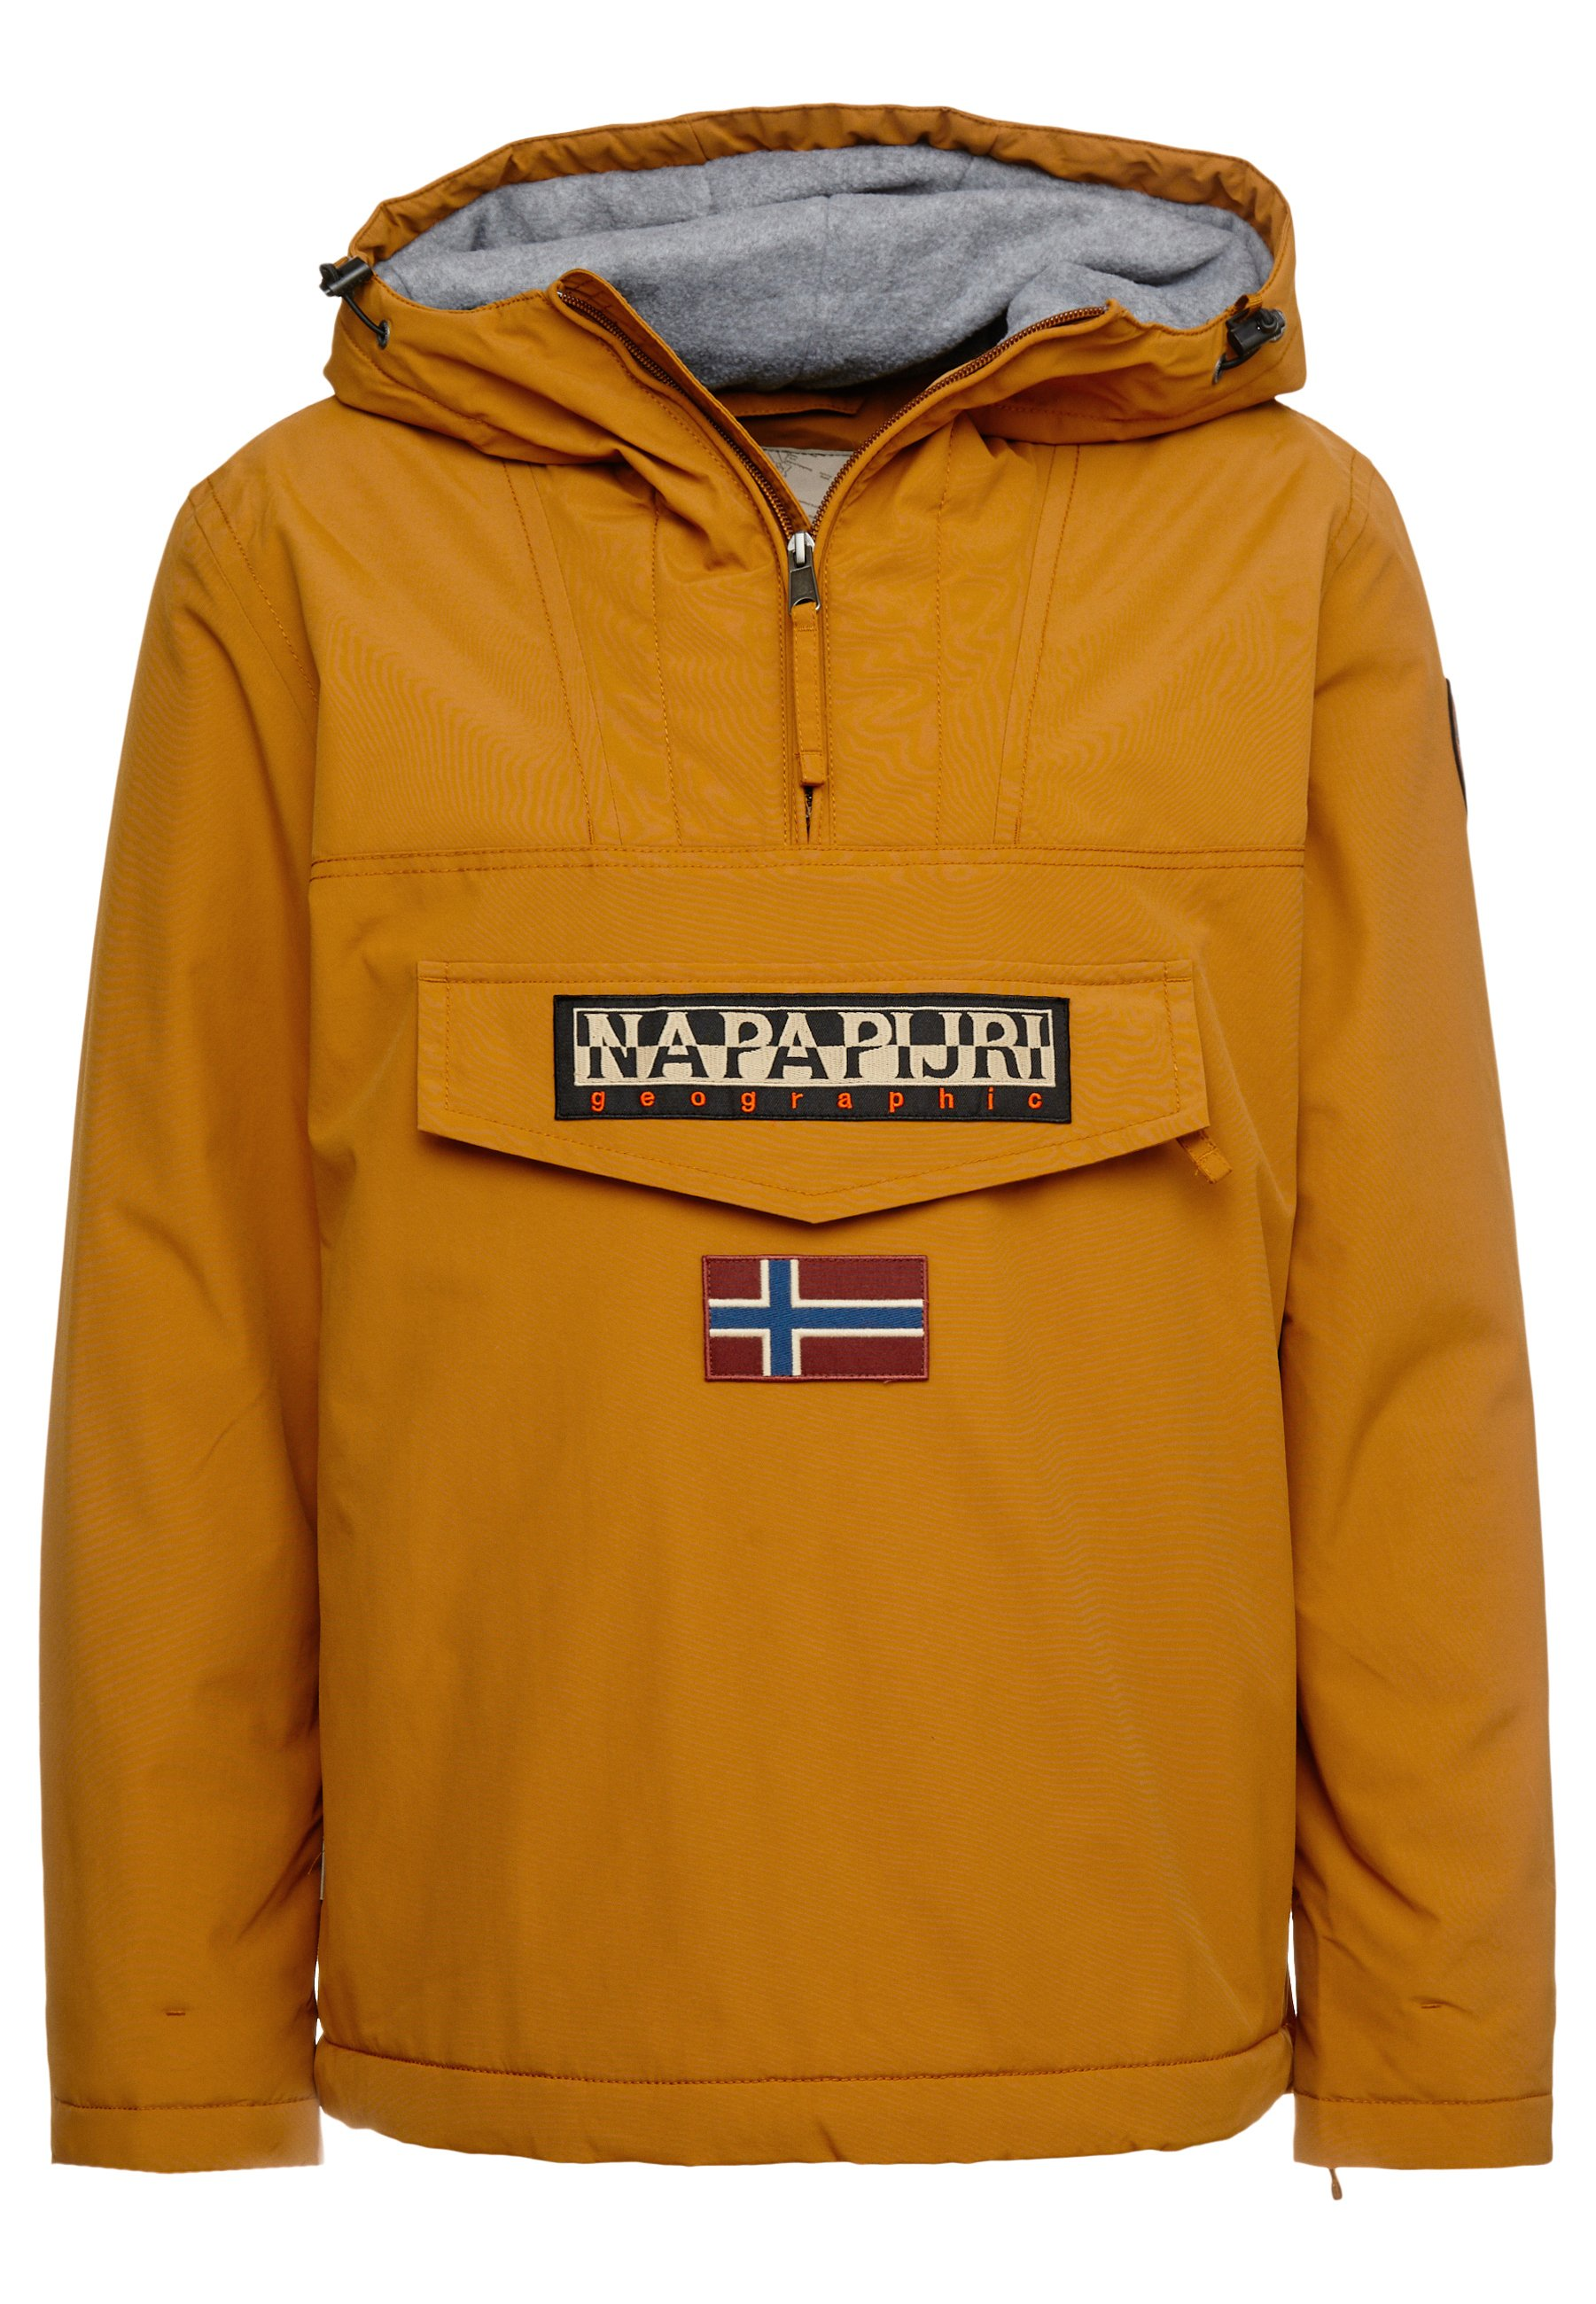 Napapijri Rainforest Winter - Windjack Golden Brown